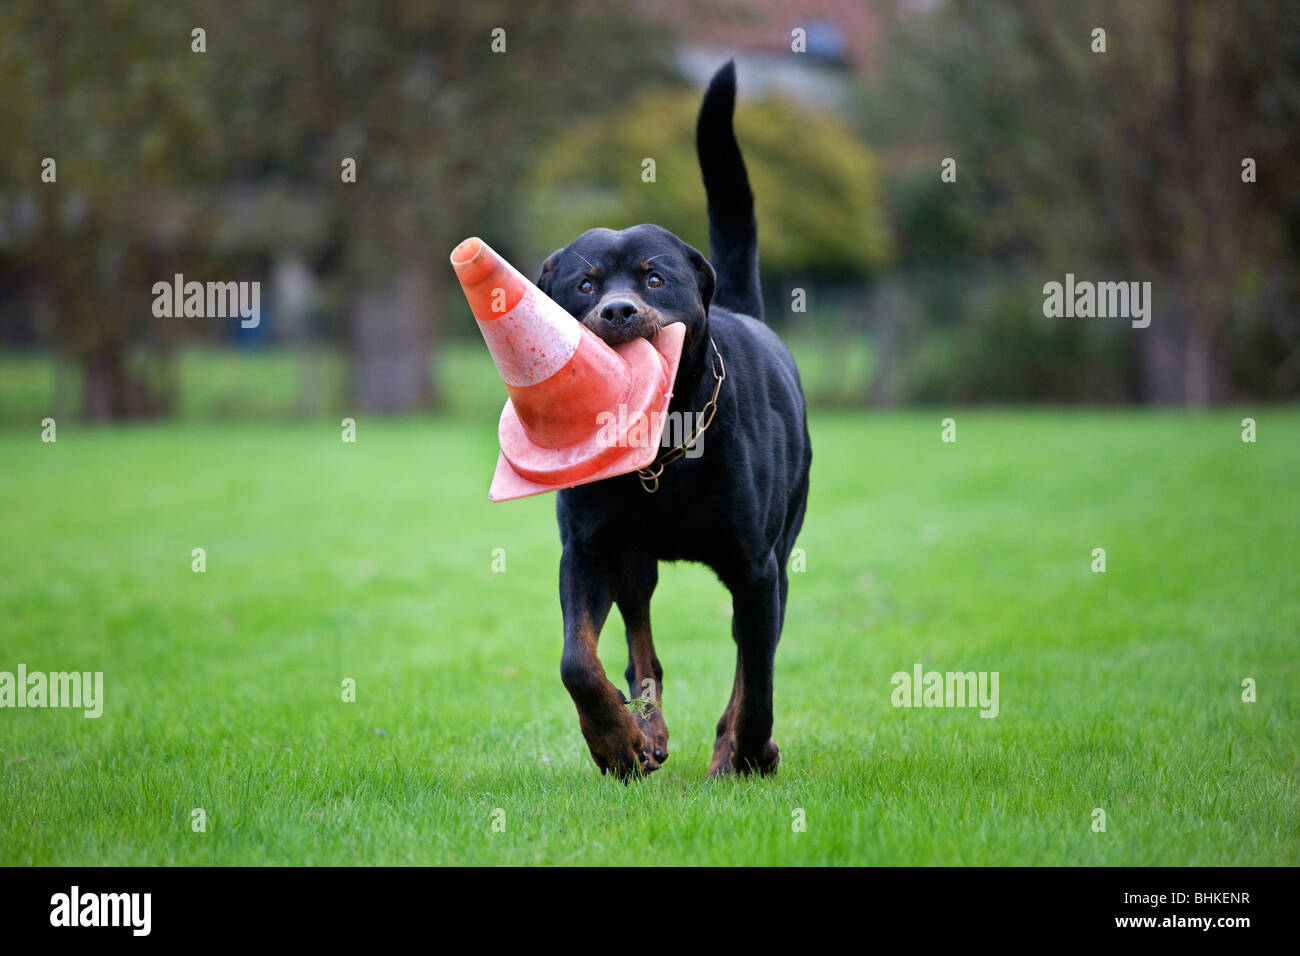 Rottweiler (Canis lupus familiaris) running with traffic cone in mouth - Stock Image